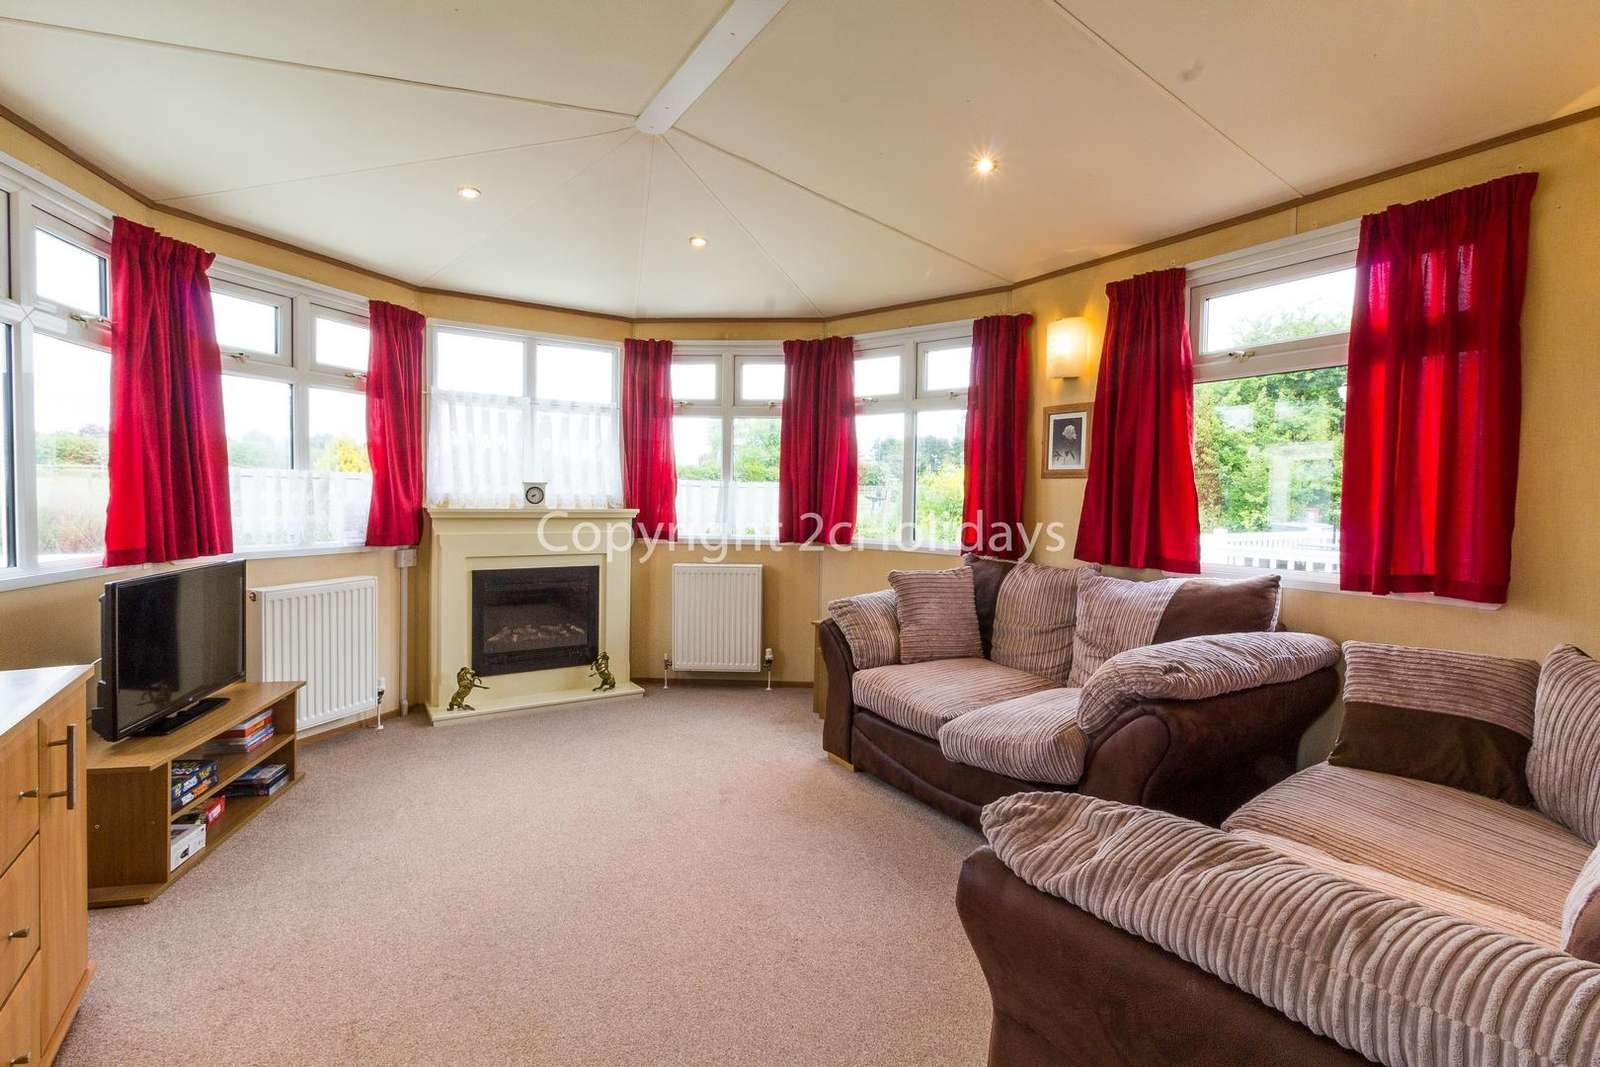 Great lounge space including a double sofa bed